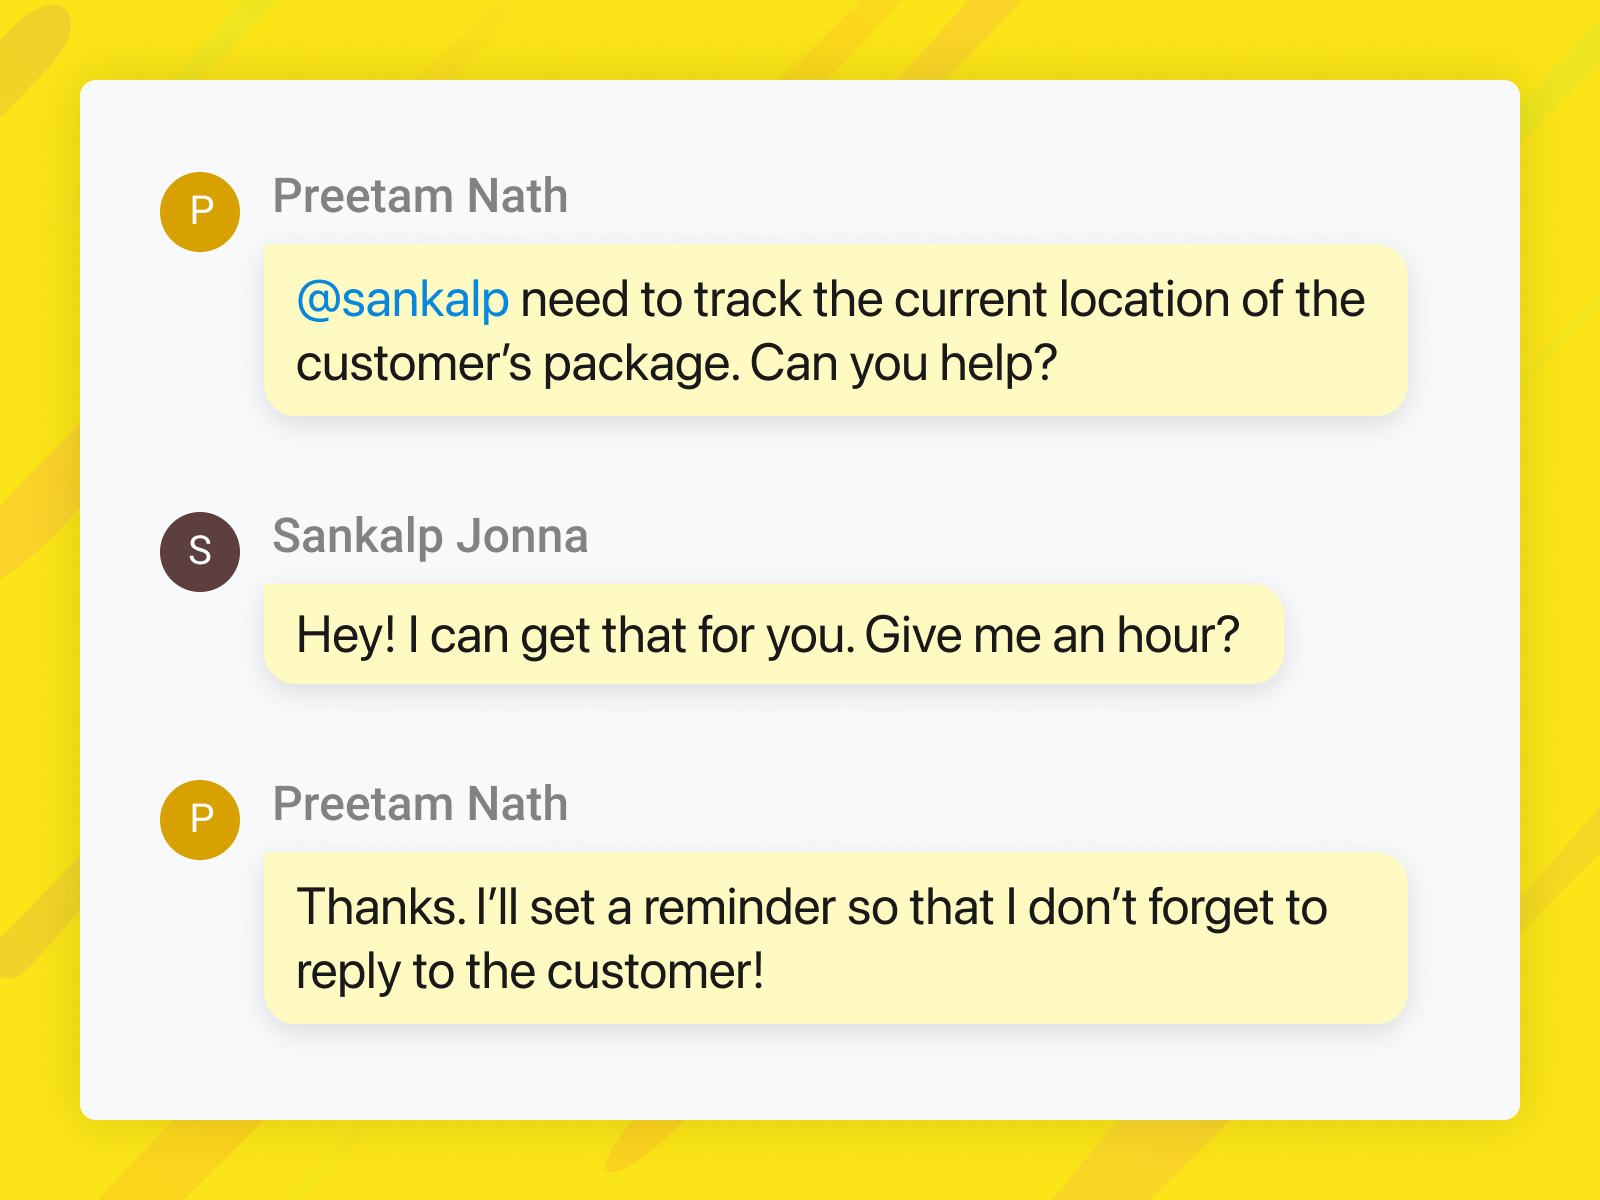 Snooze a conversation while you investigate a customer's issue.